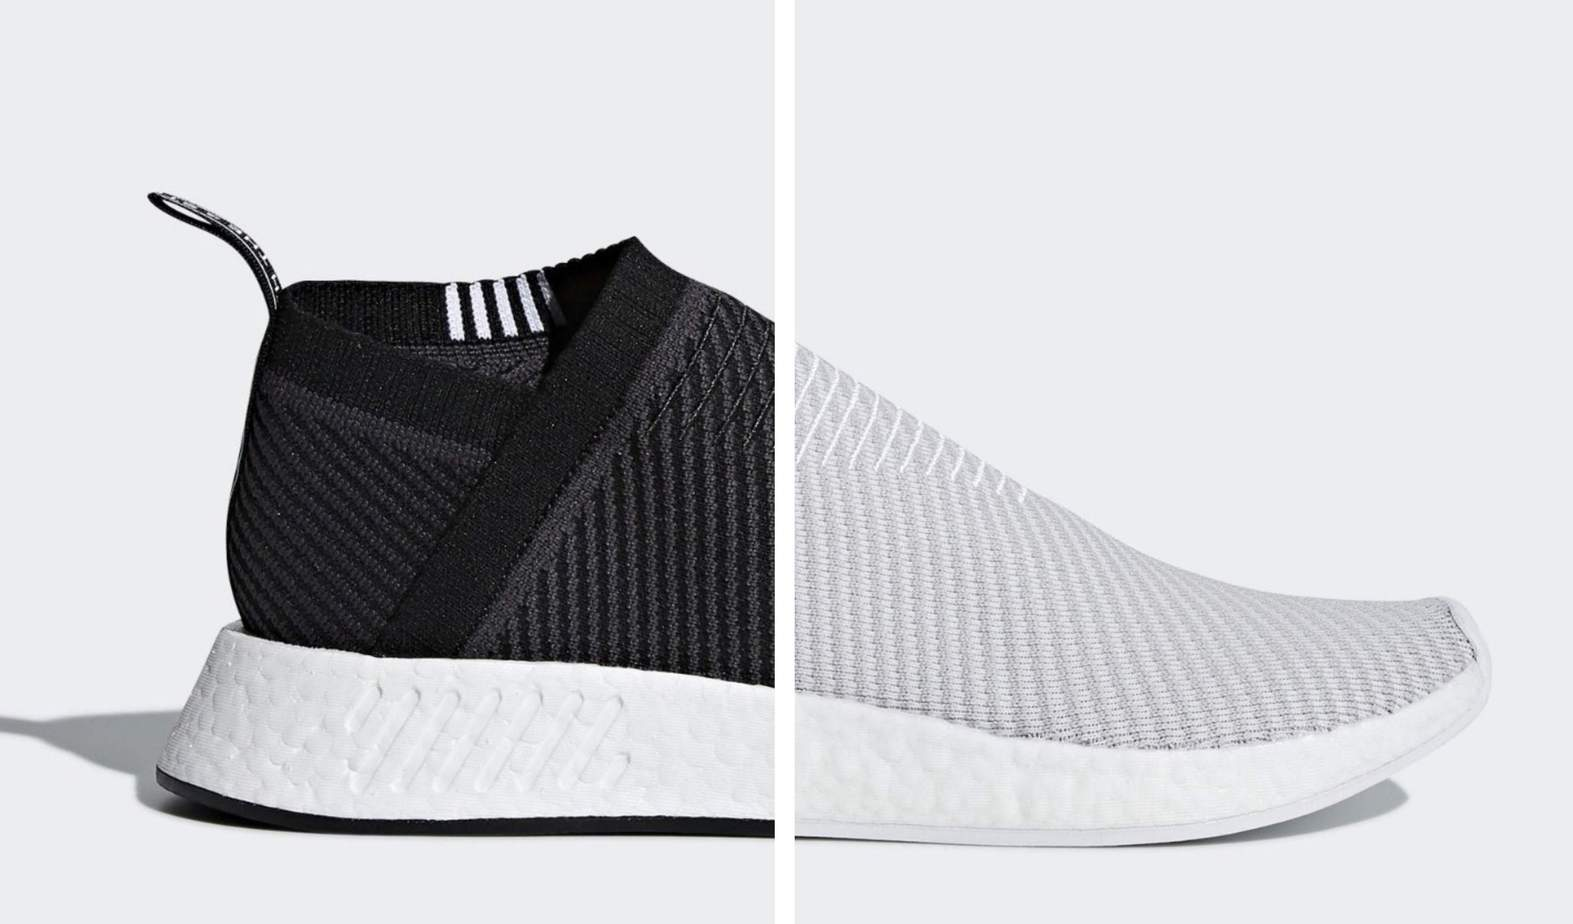 7122988e999c26 adidas  Sleek NMD City Sock 2 Launches in Basic Black   White This Summer